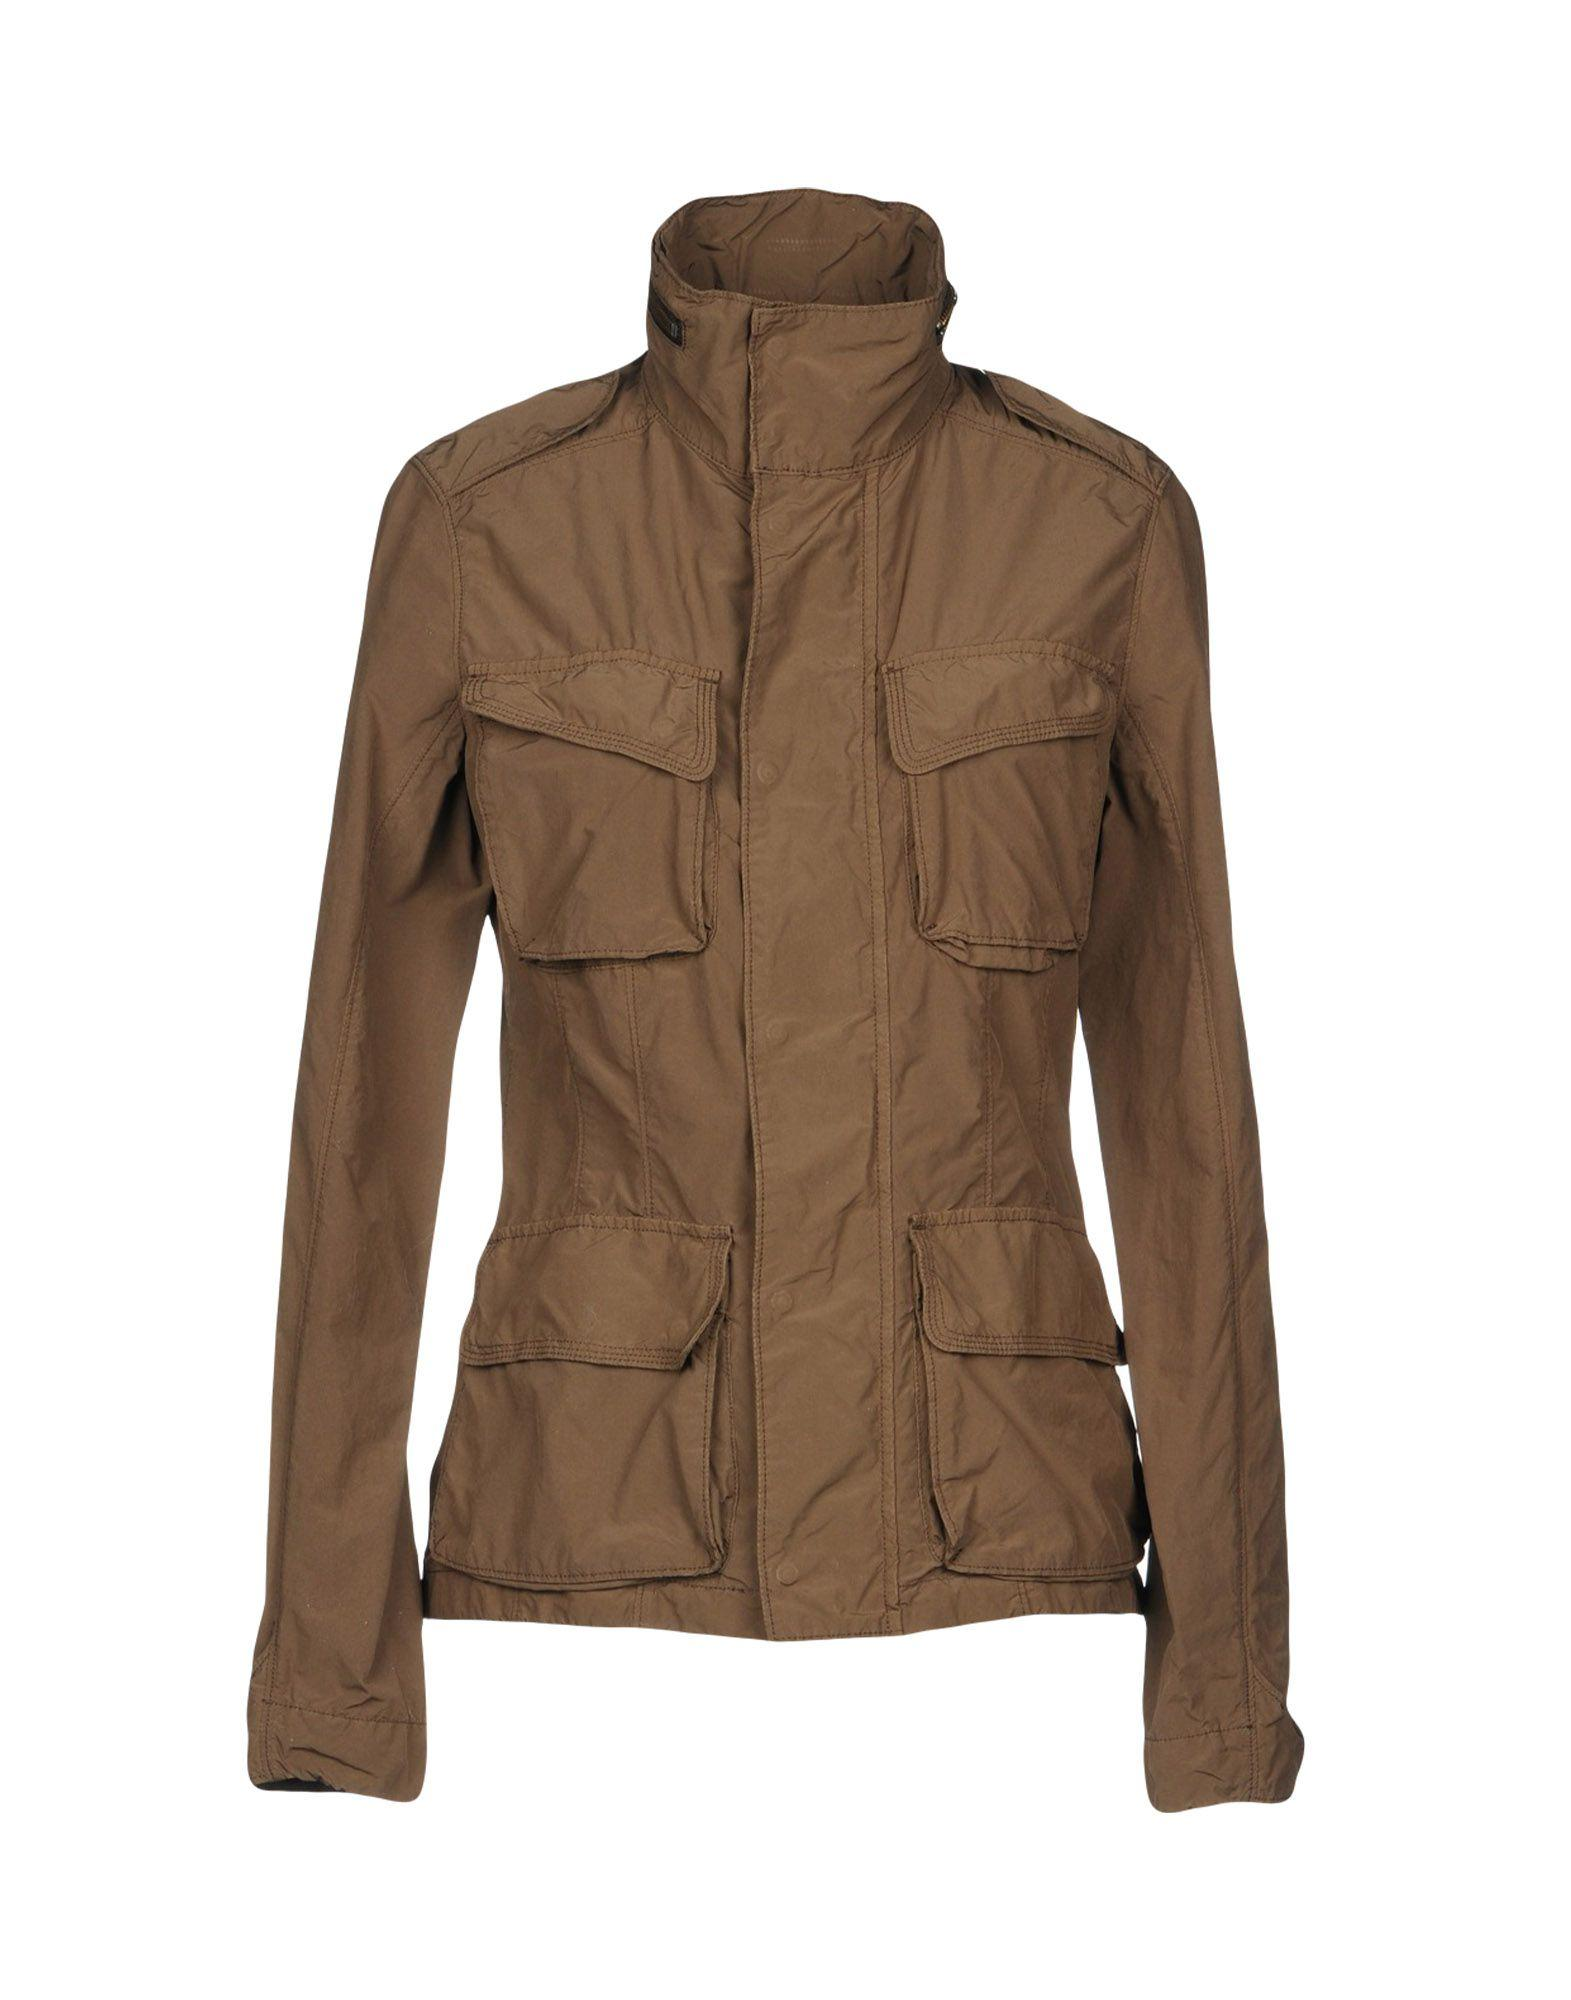 Aspesi Jackets In Khaki